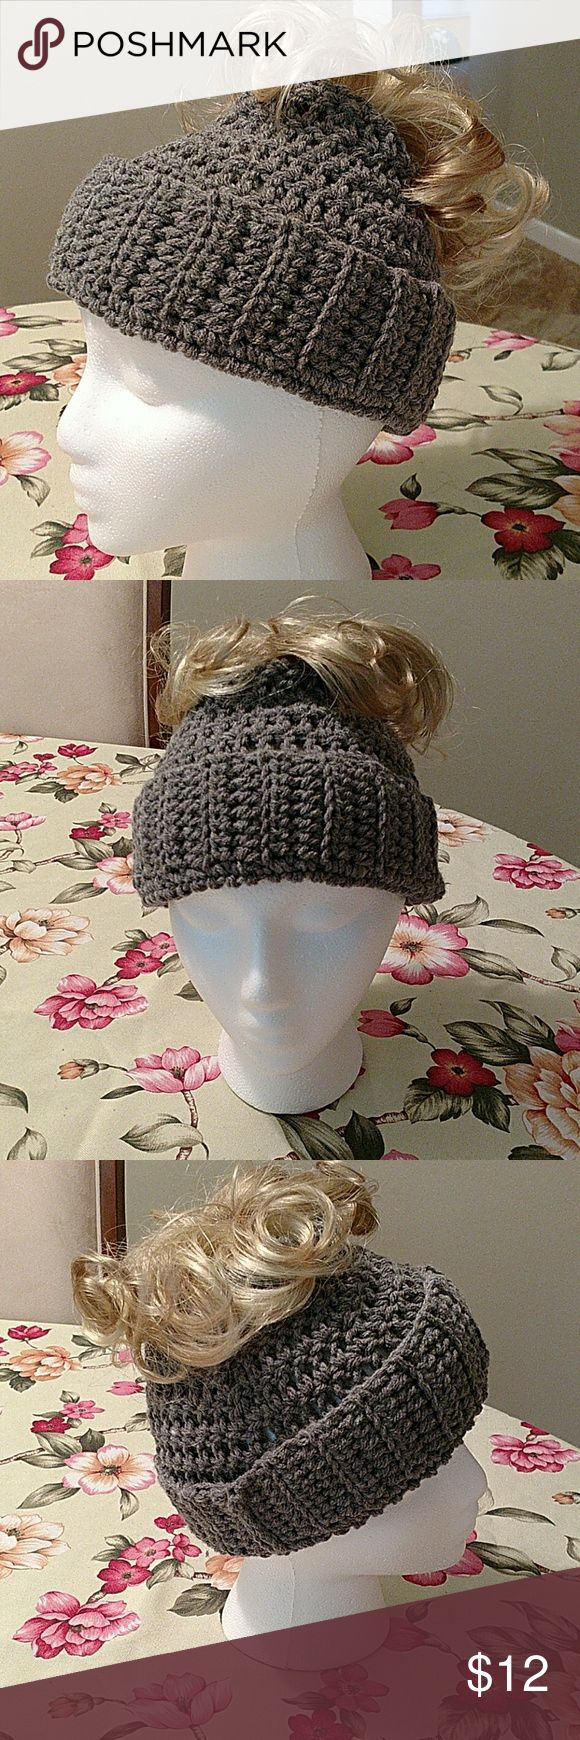 Messy Bun Hat Medium grey hat. Pull your bun or ponytail through opening on top. 100% acrylic for machine washing and drying. So fashion forward! Handmade Accessories Hats